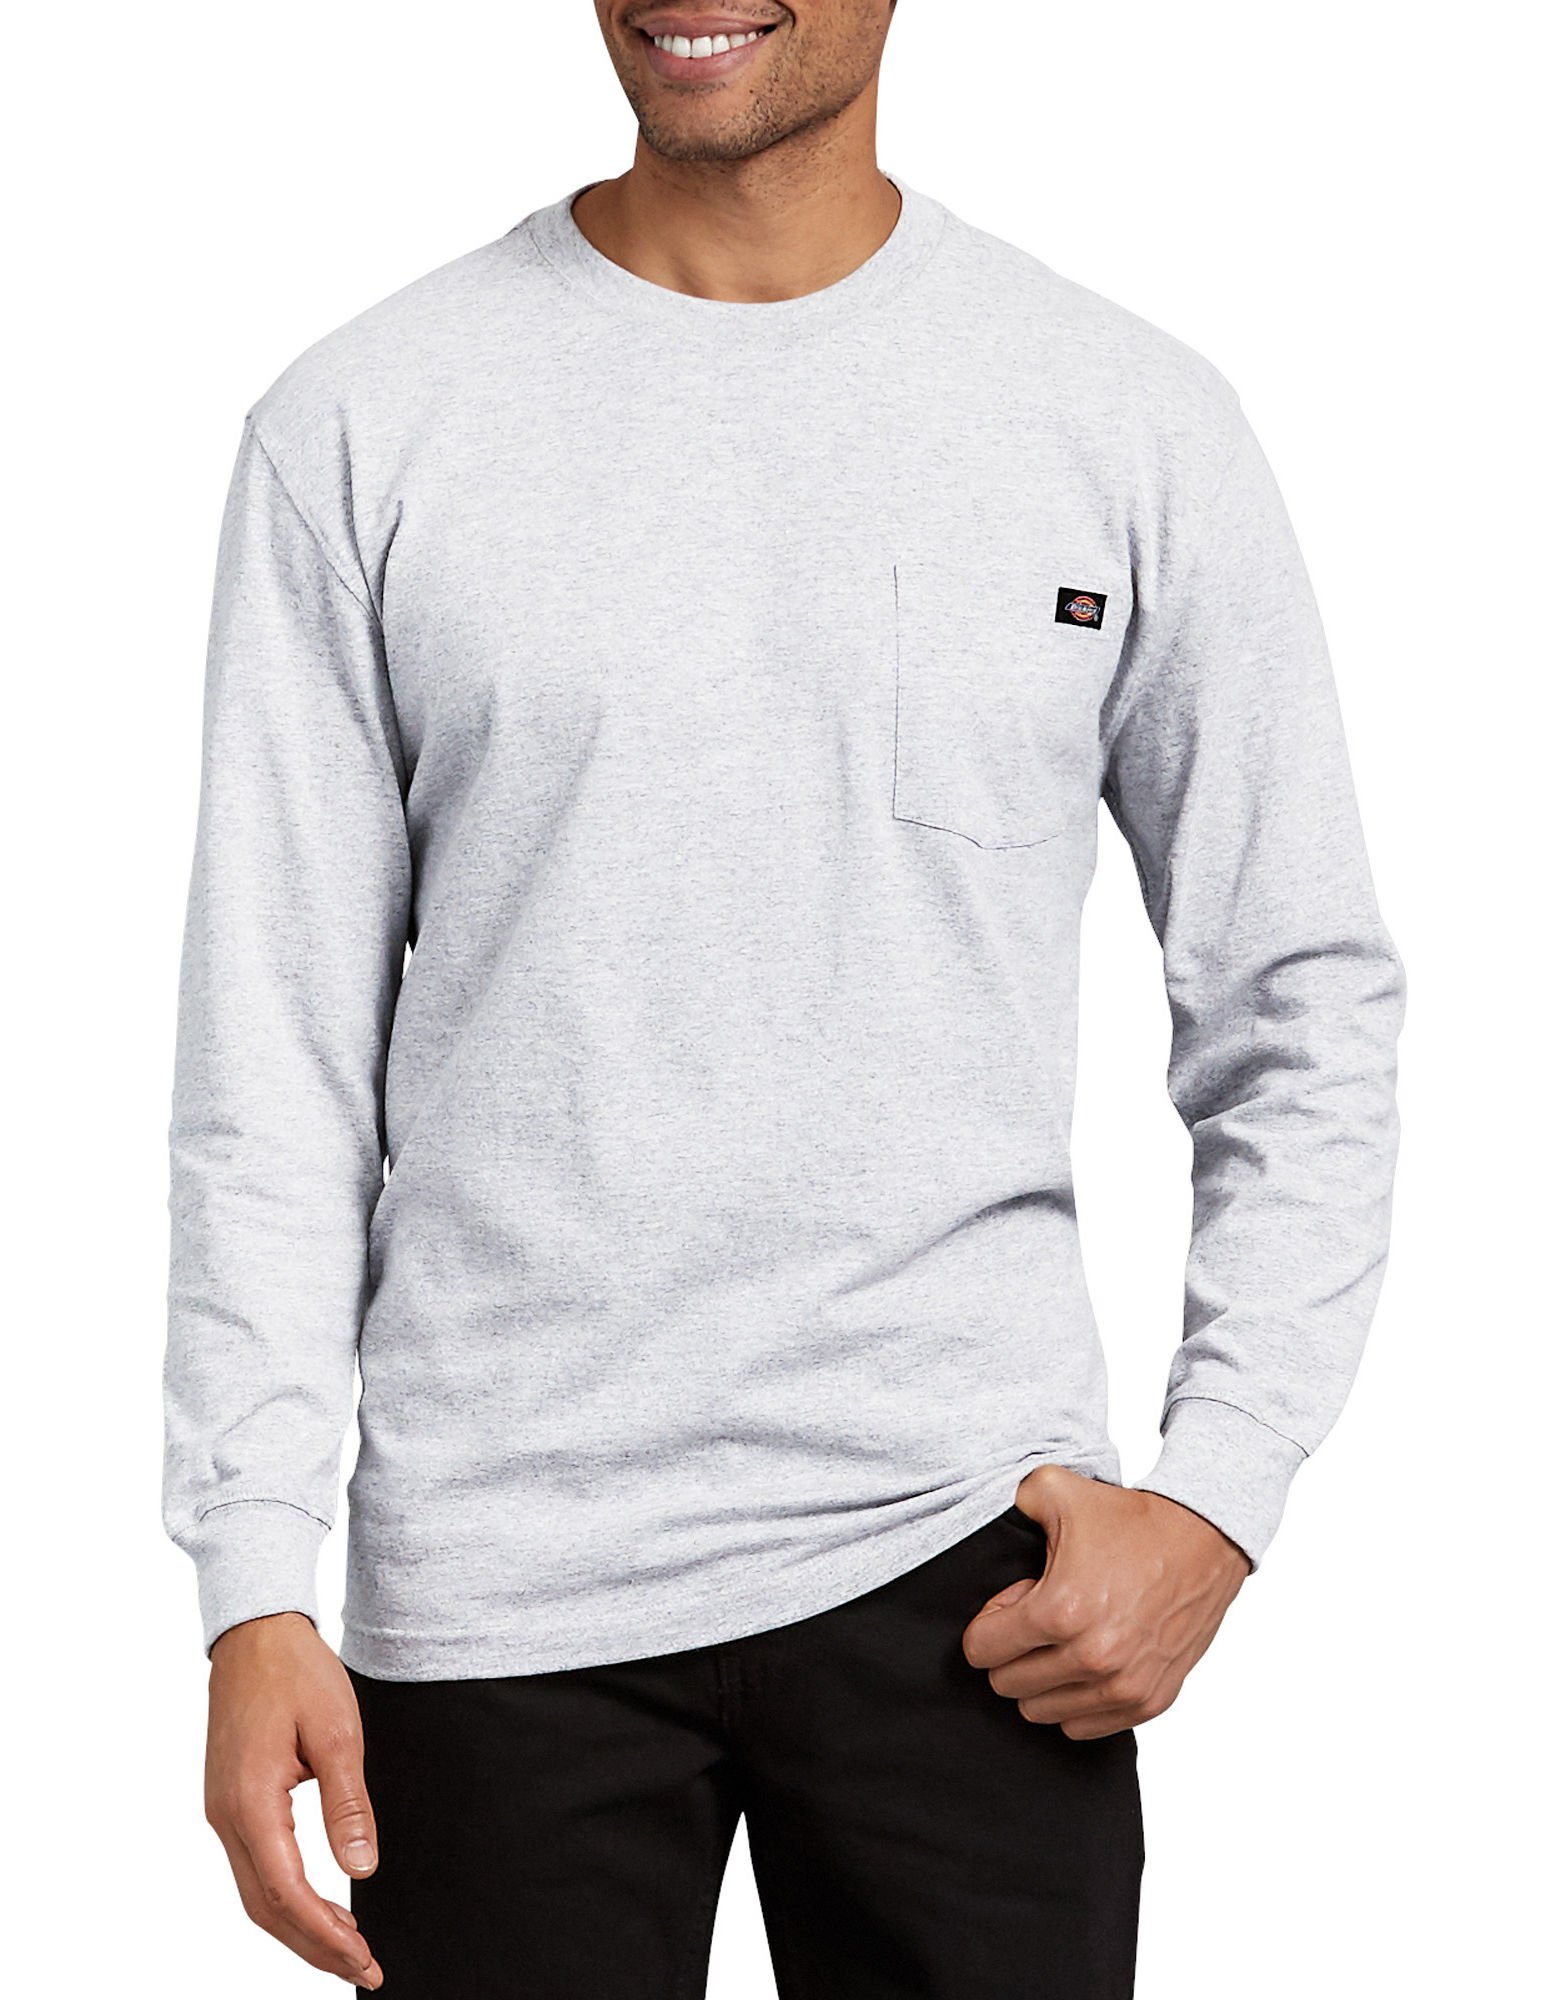 e2bc71a005a3 Dickies - Long Sleeve Heavyweight Crew Neck Tee | Up to 33% Off Free  Shipping over $49!